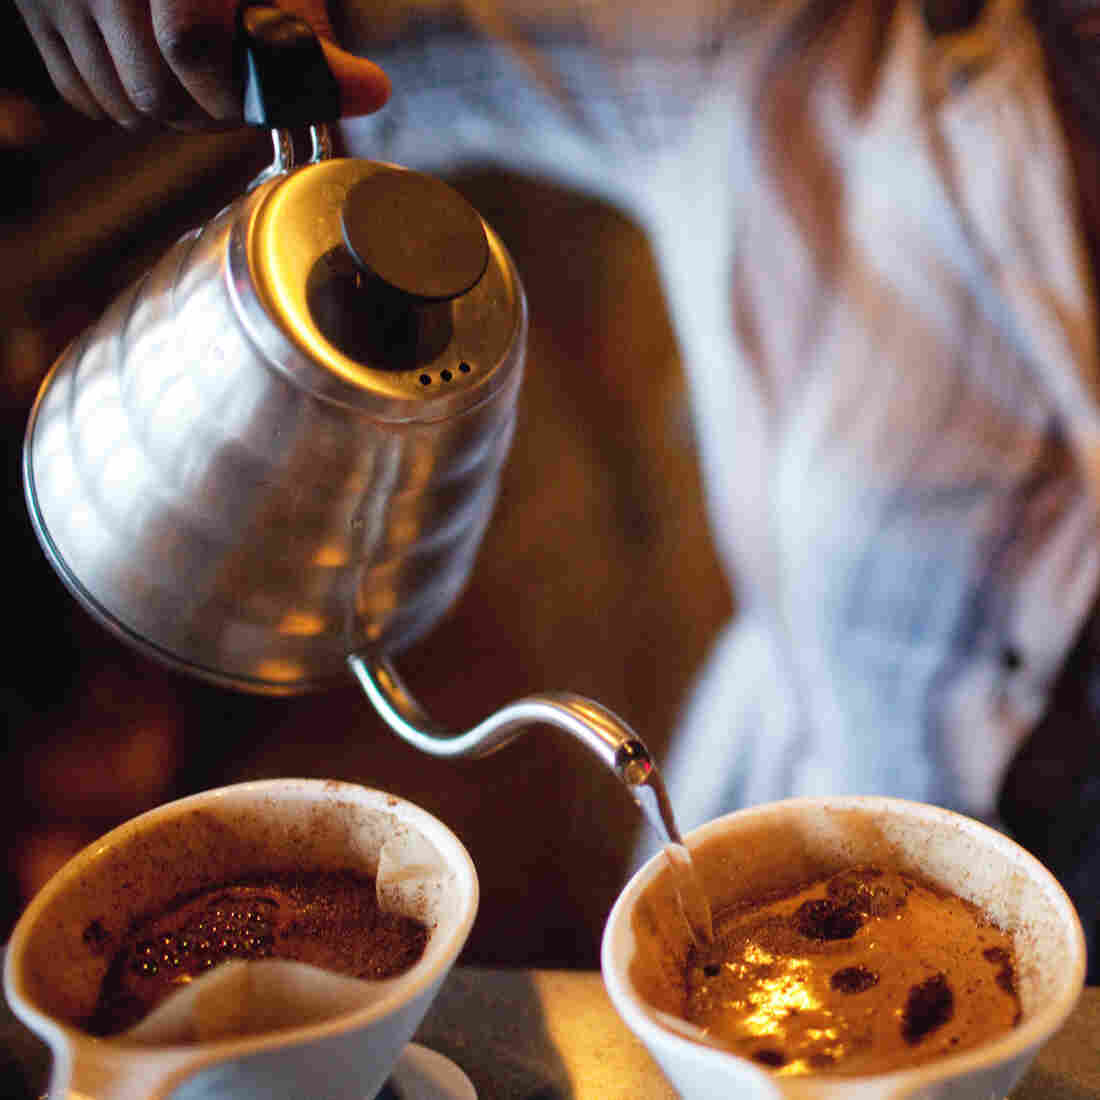 Daily coffee could contribute to longevity finds study